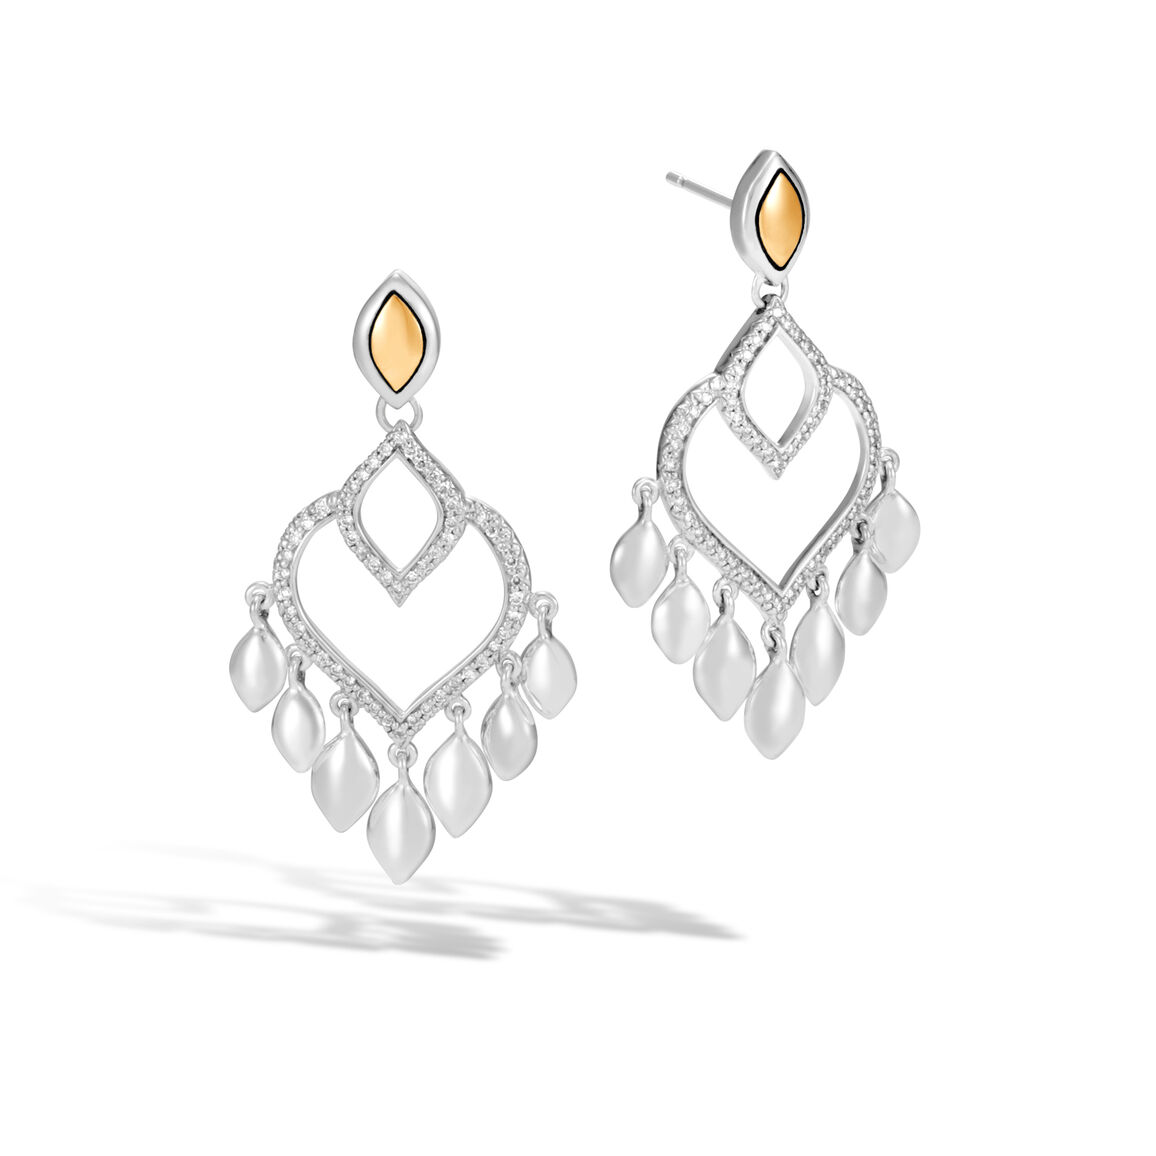 Legends Naga Chandelier Earring, Silver, 18K Gold , Diamonds